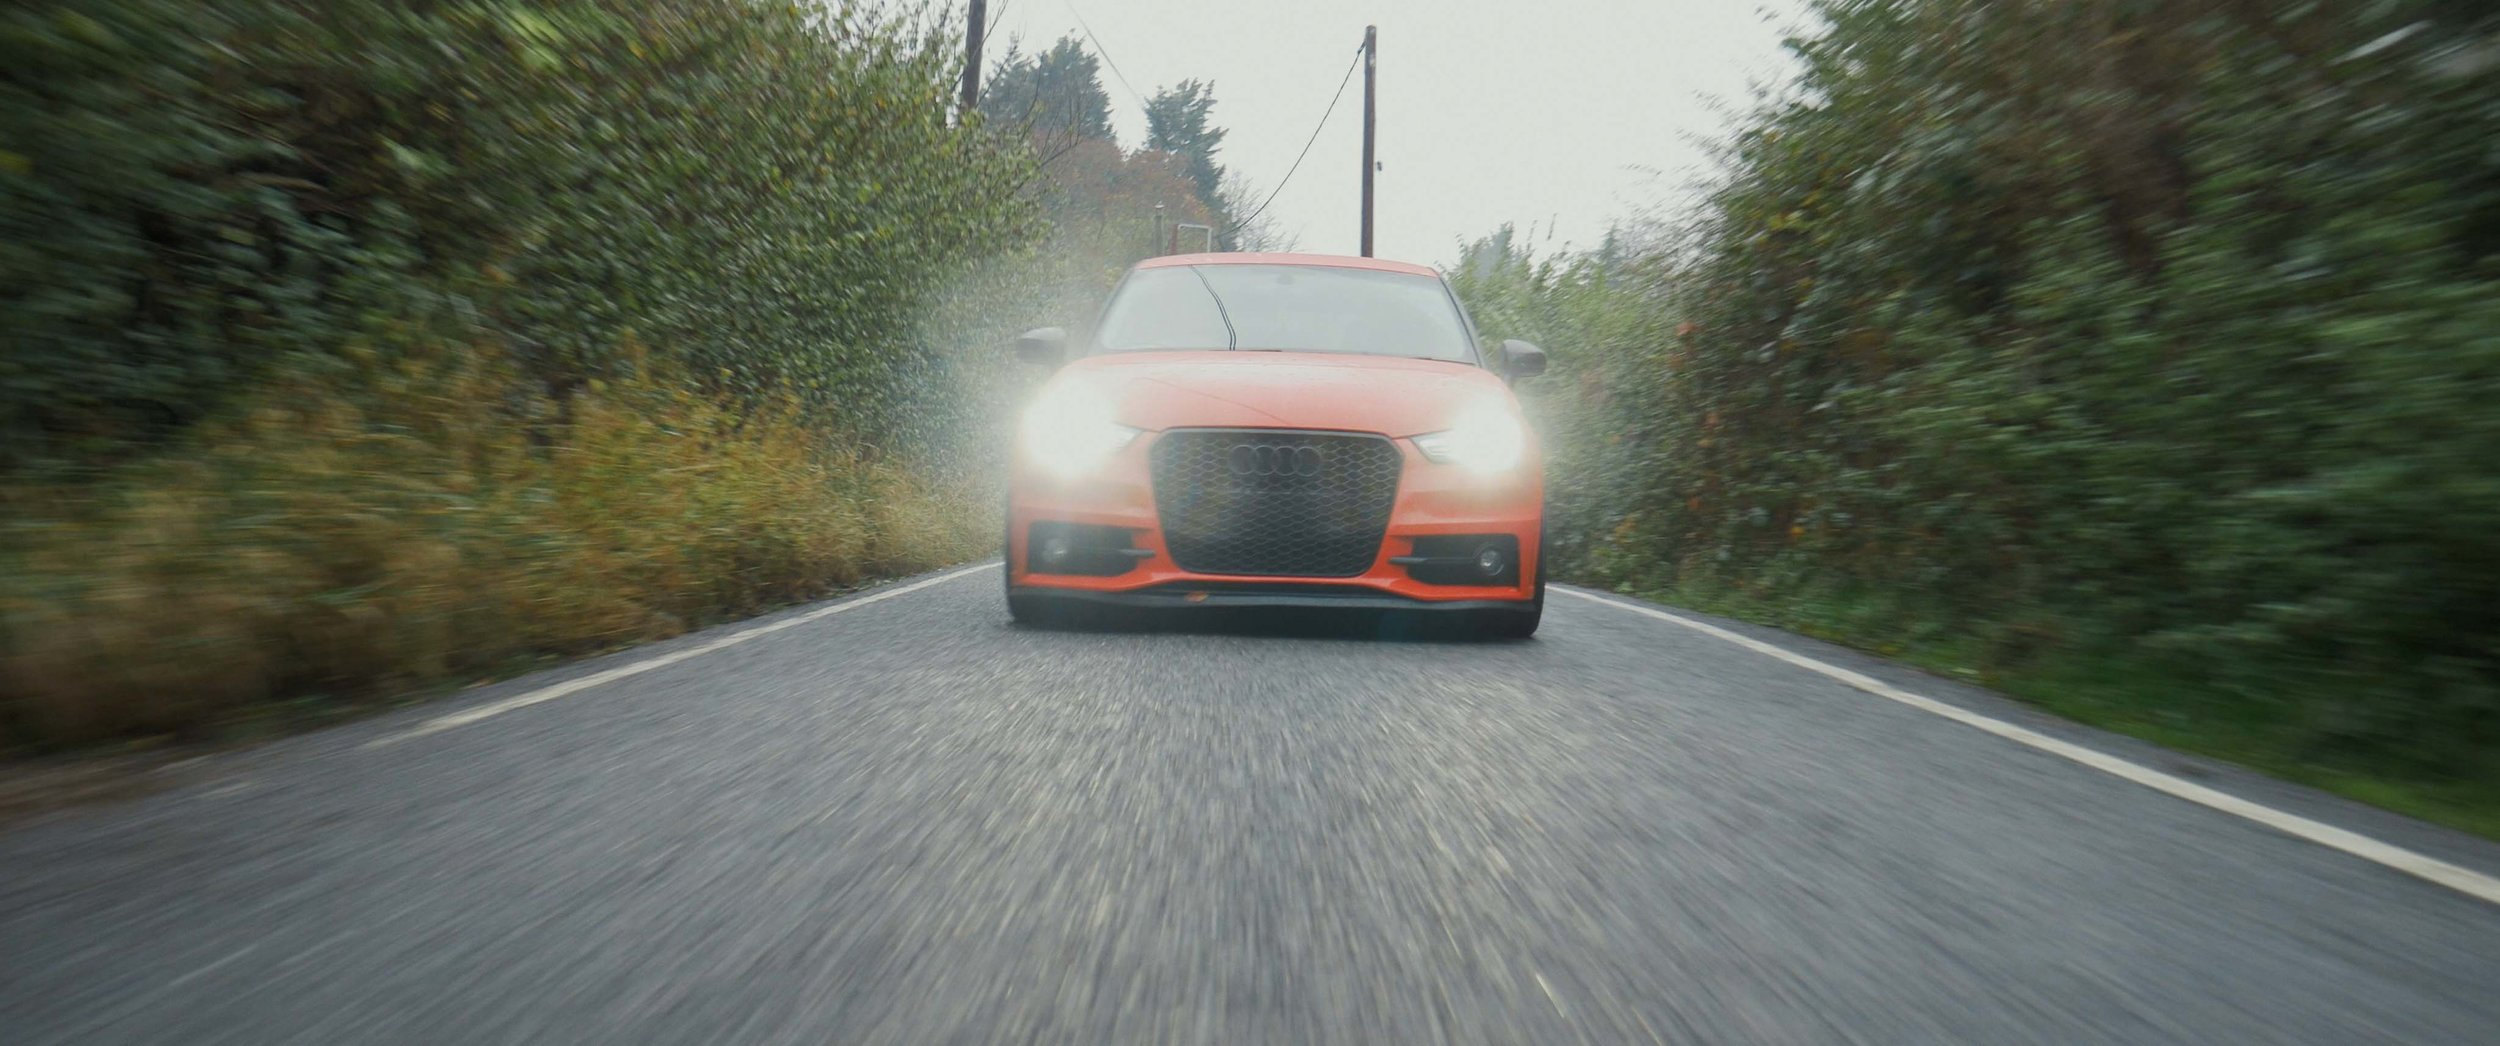 audi a1 - toto tyres